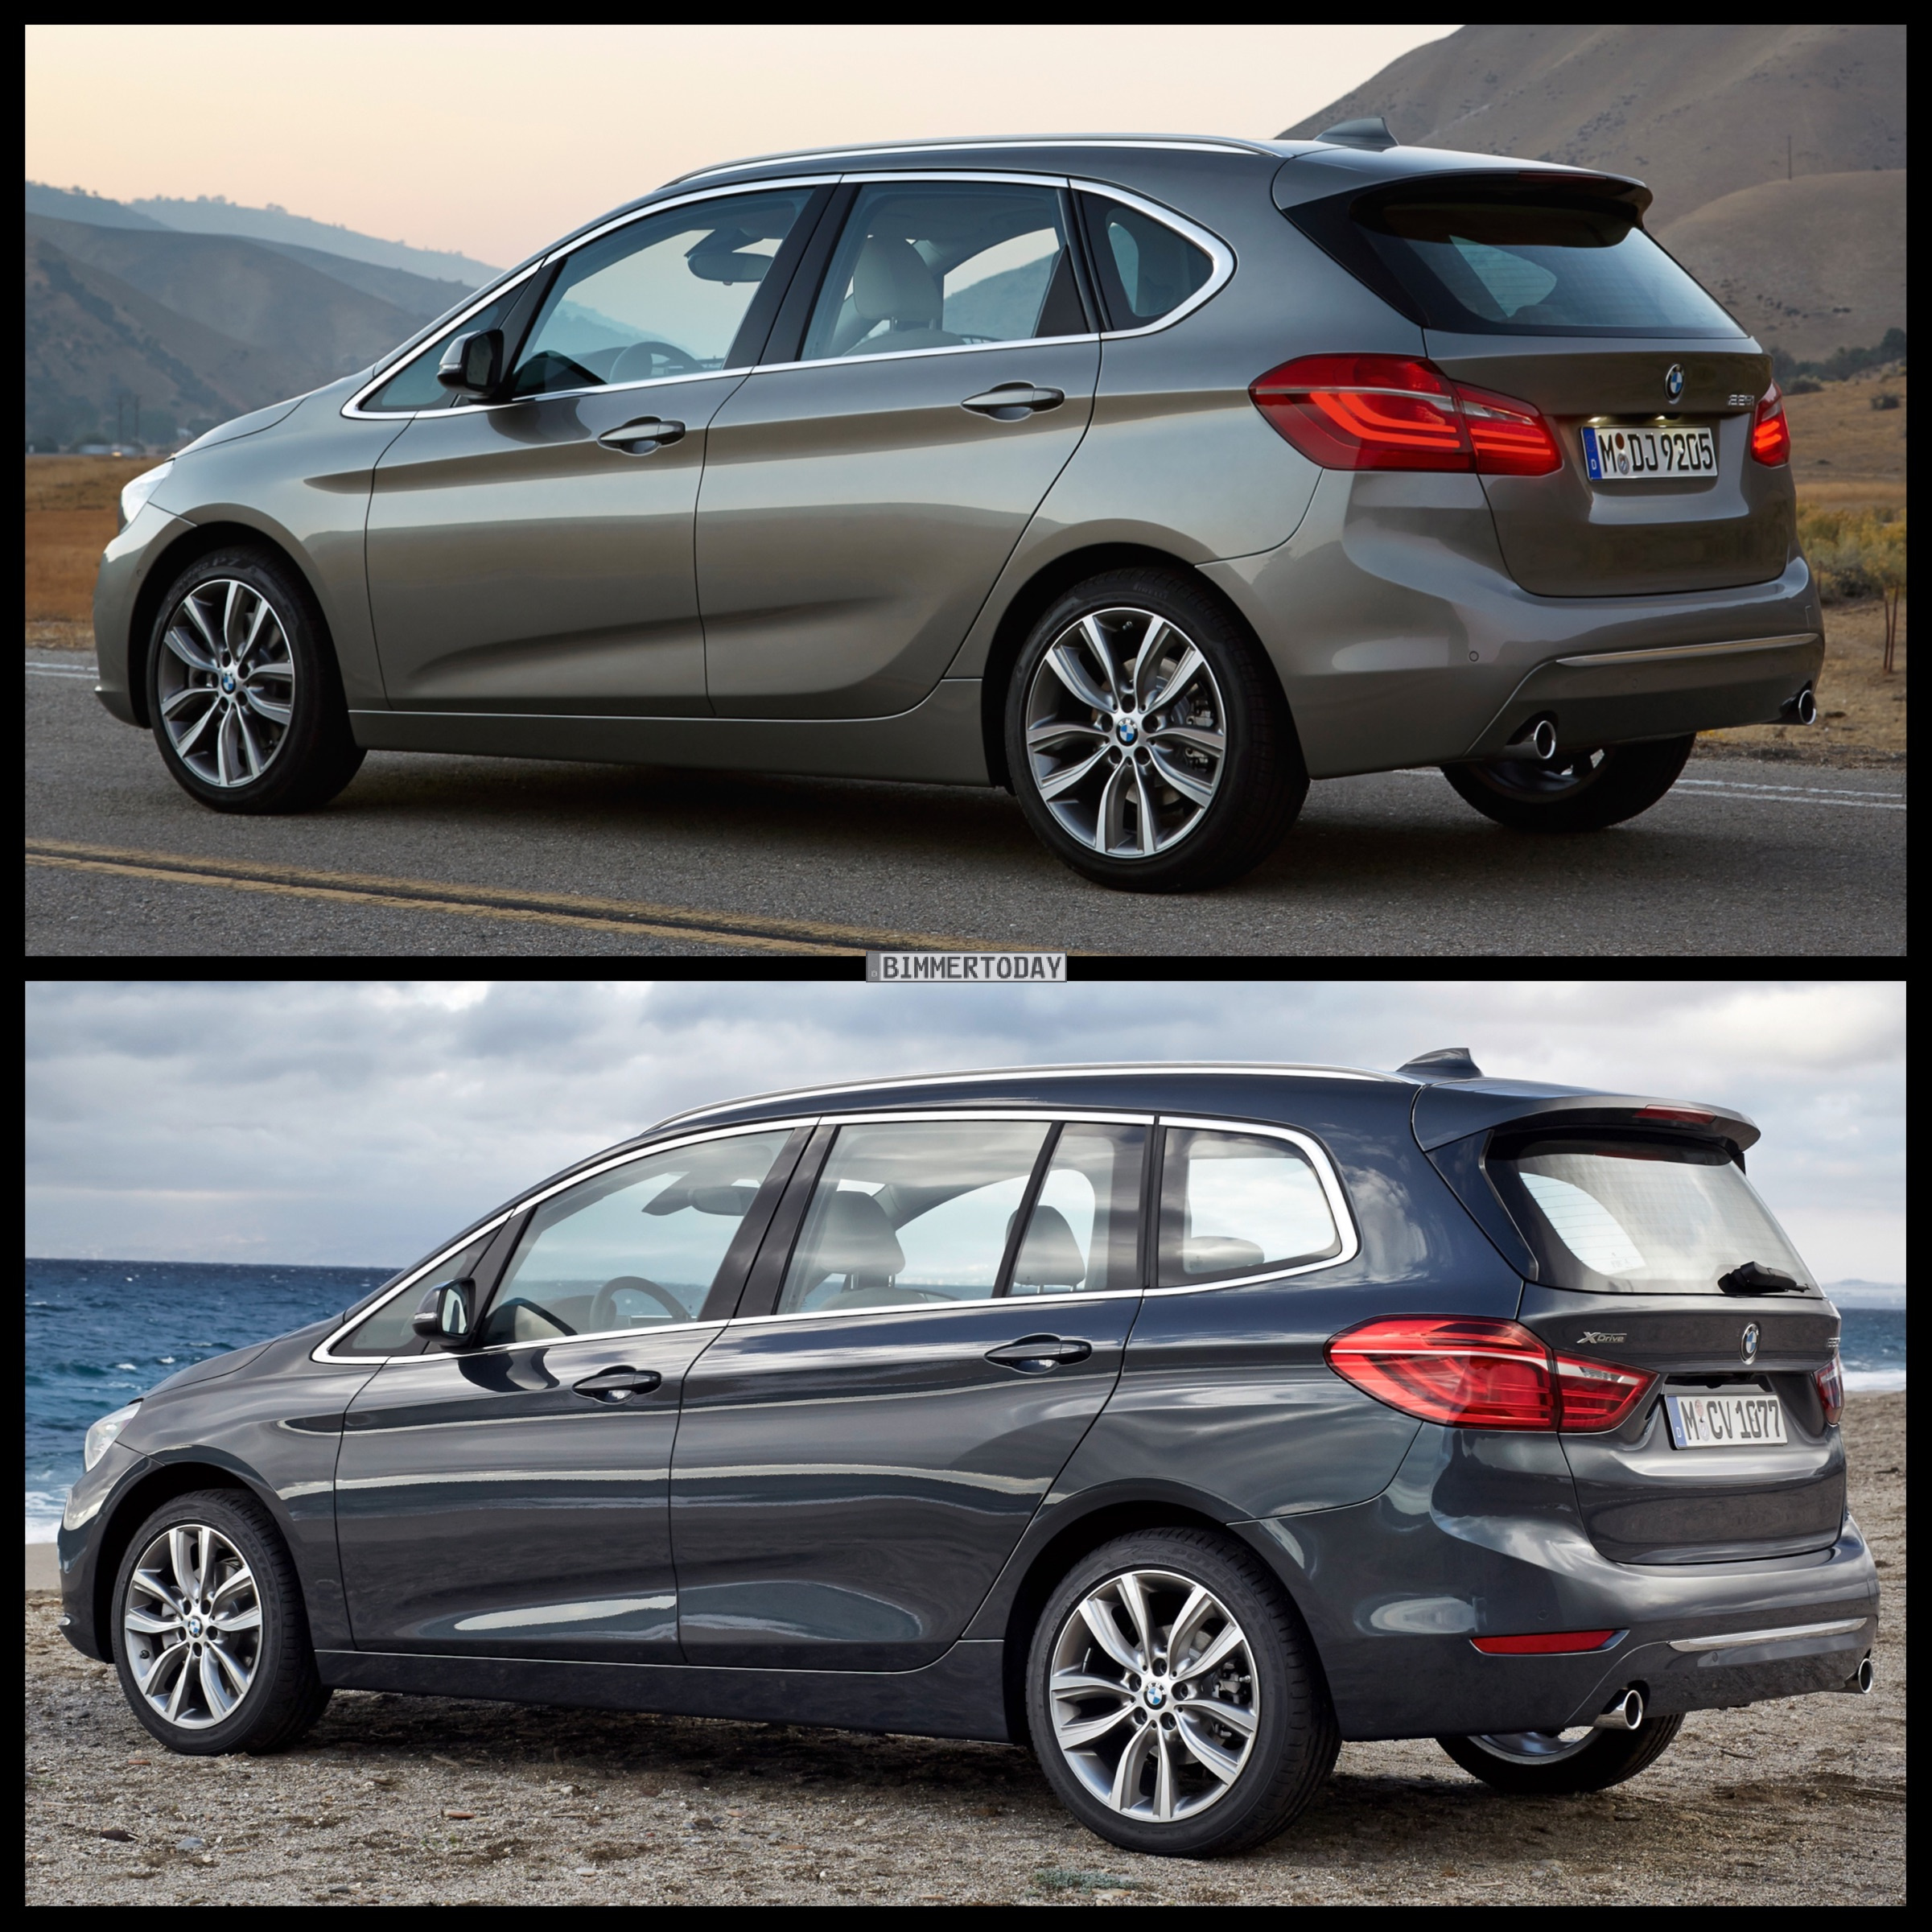 bmw 2 series gran tourer vs bmw 2 series active tourer photo comparison. Black Bedroom Furniture Sets. Home Design Ideas